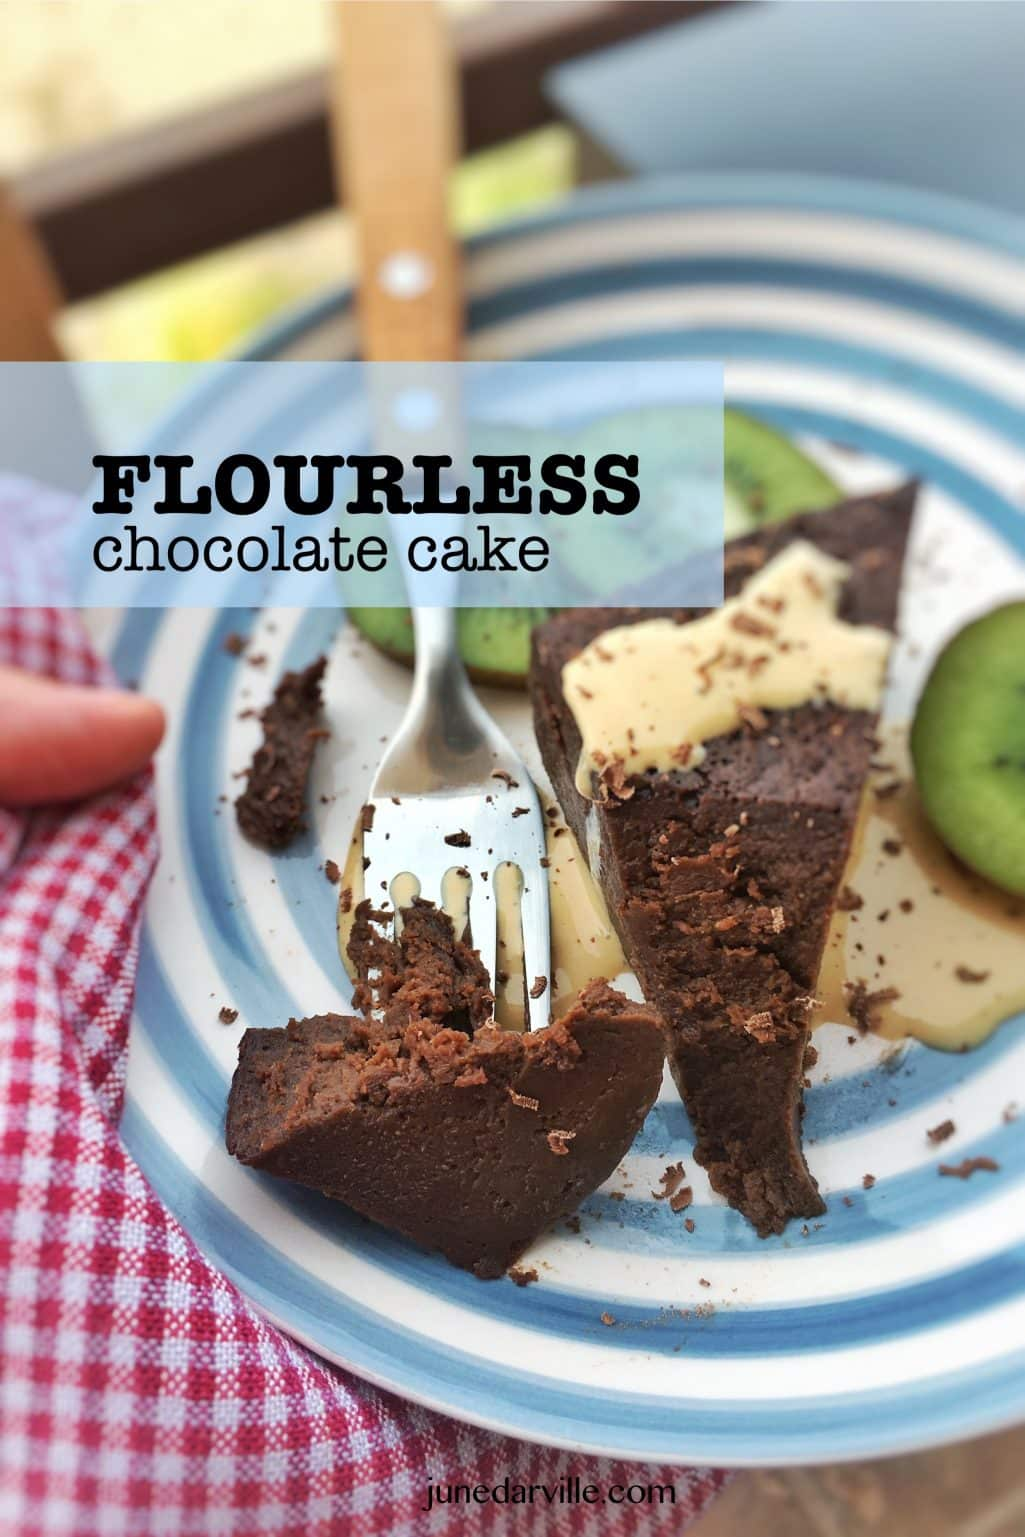 Flourless Chocolate Cake Recipe (Gluten Free)